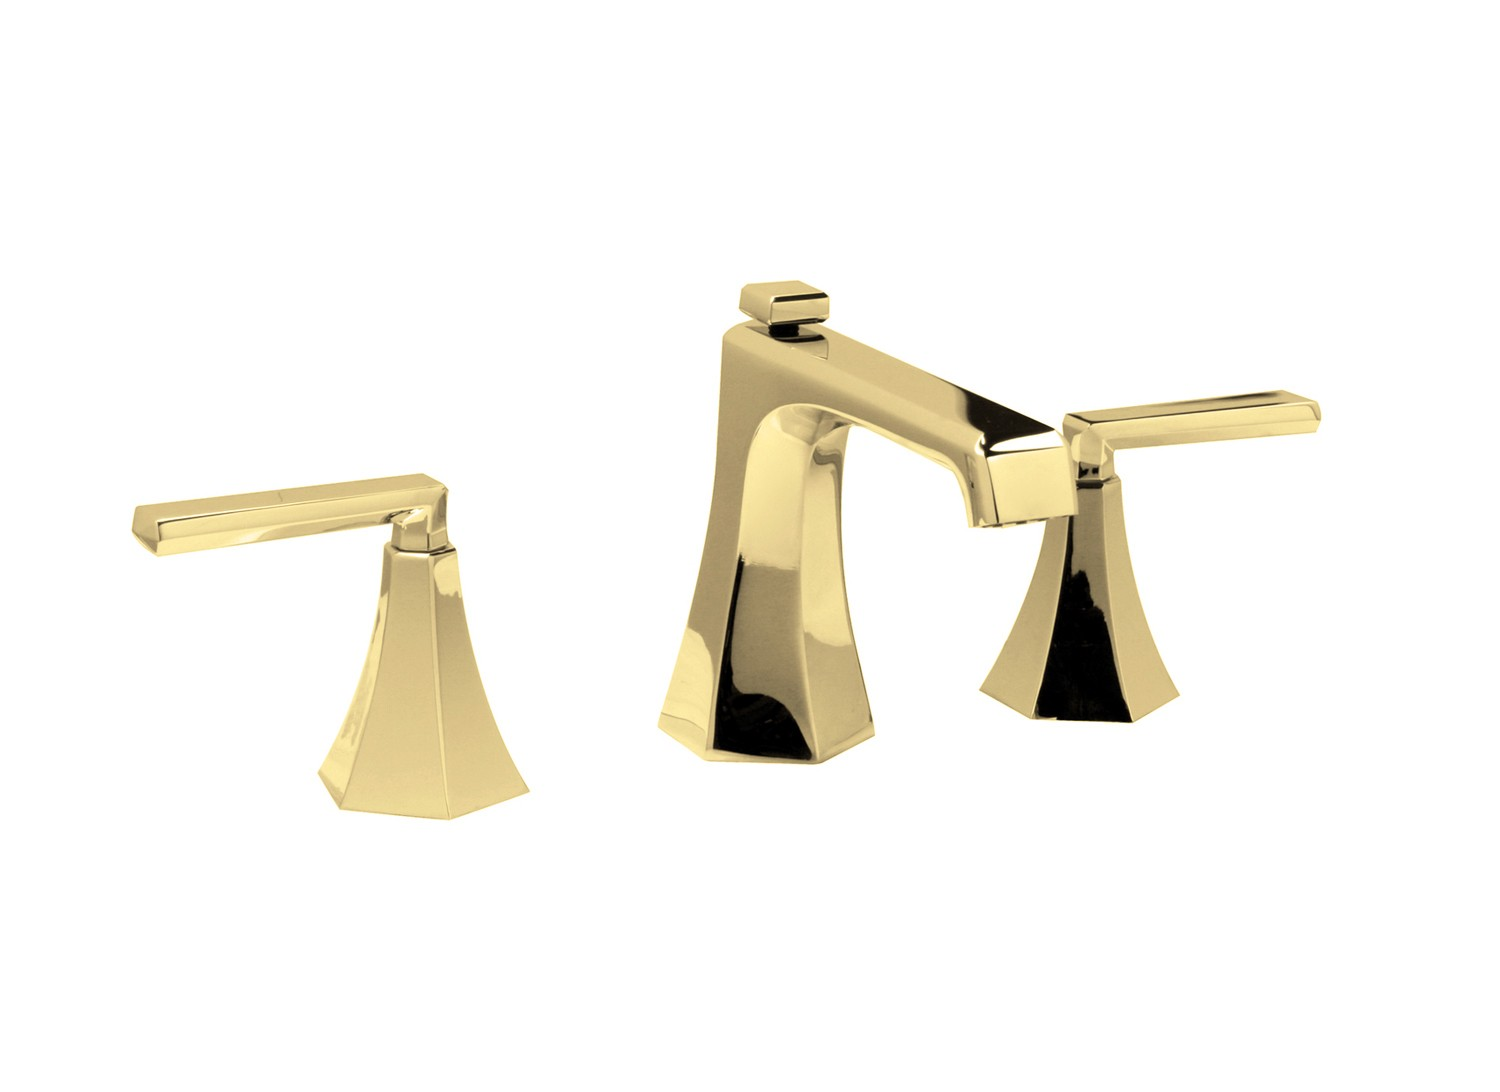 McMillan Widespread Faucet W4560513-1